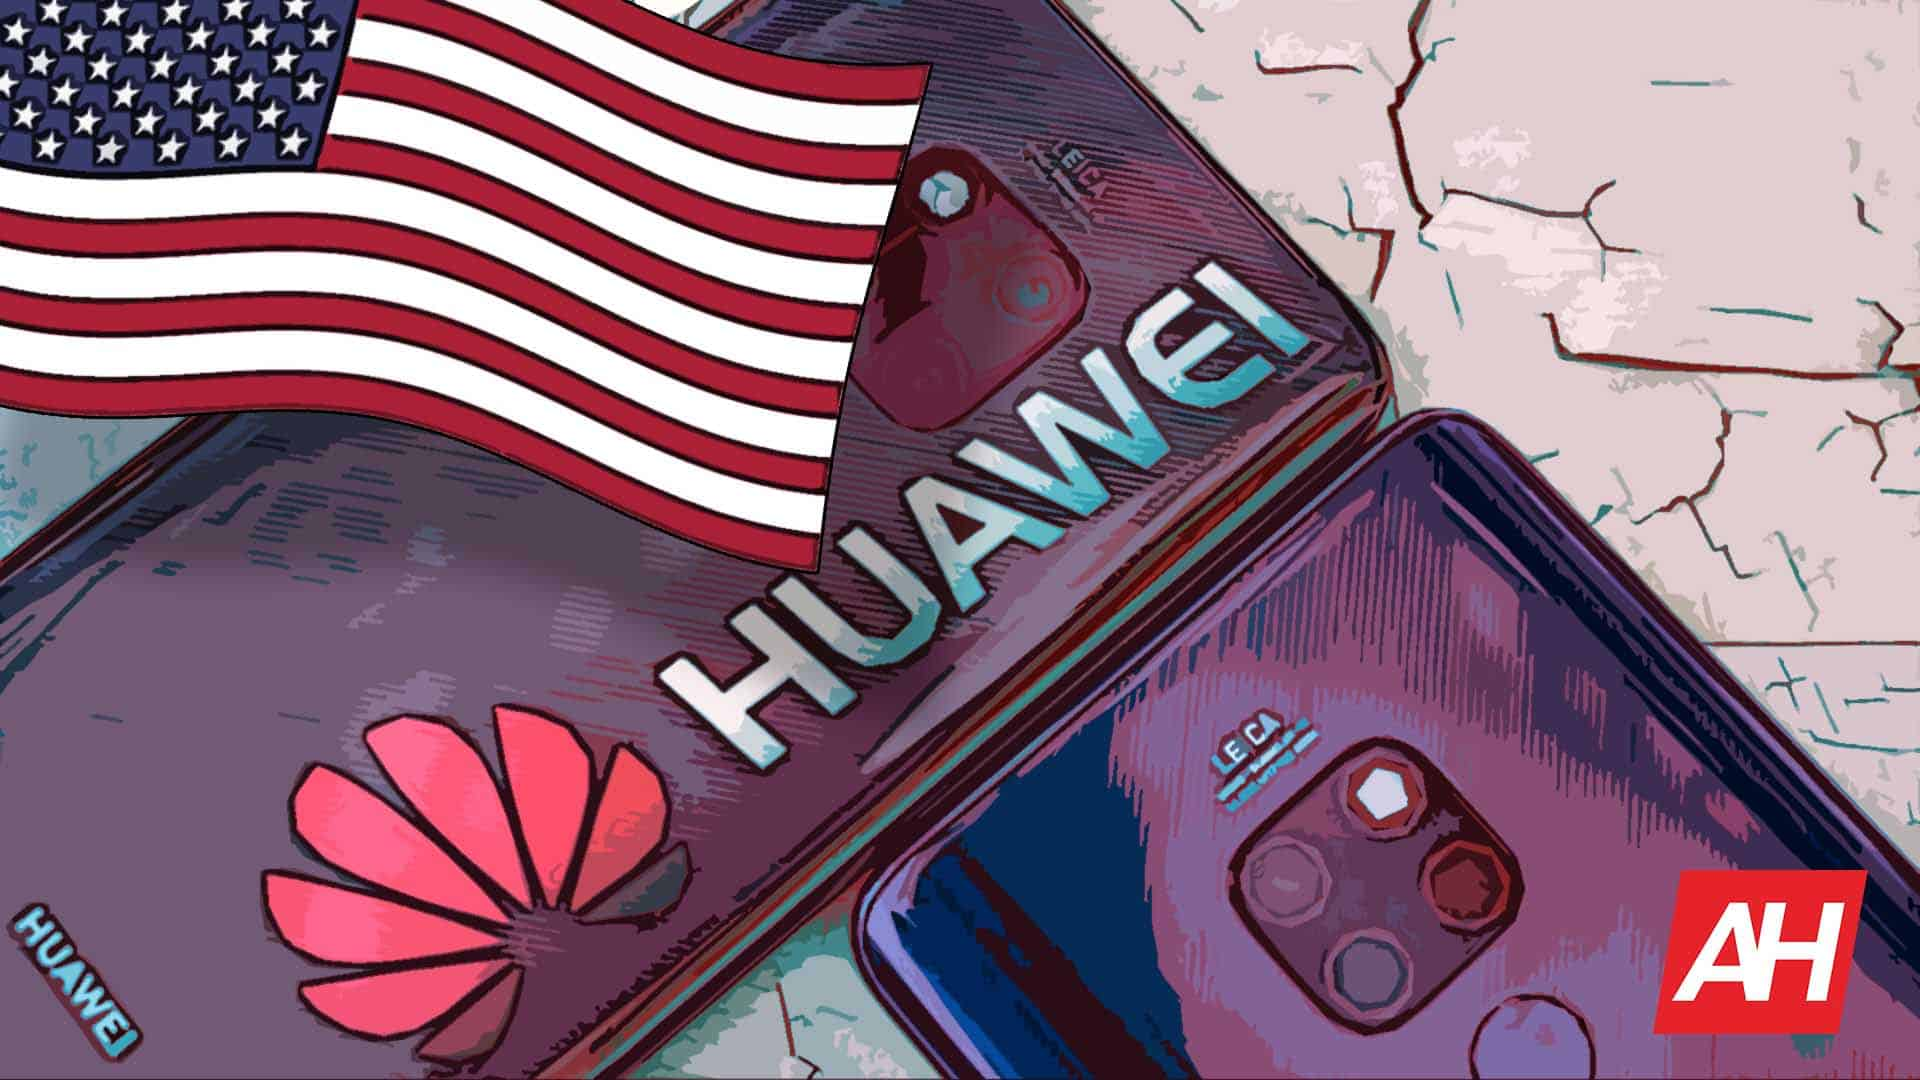 smic-now-asks-the-us-for-permission-to-supply-chips-to-huawei Photo